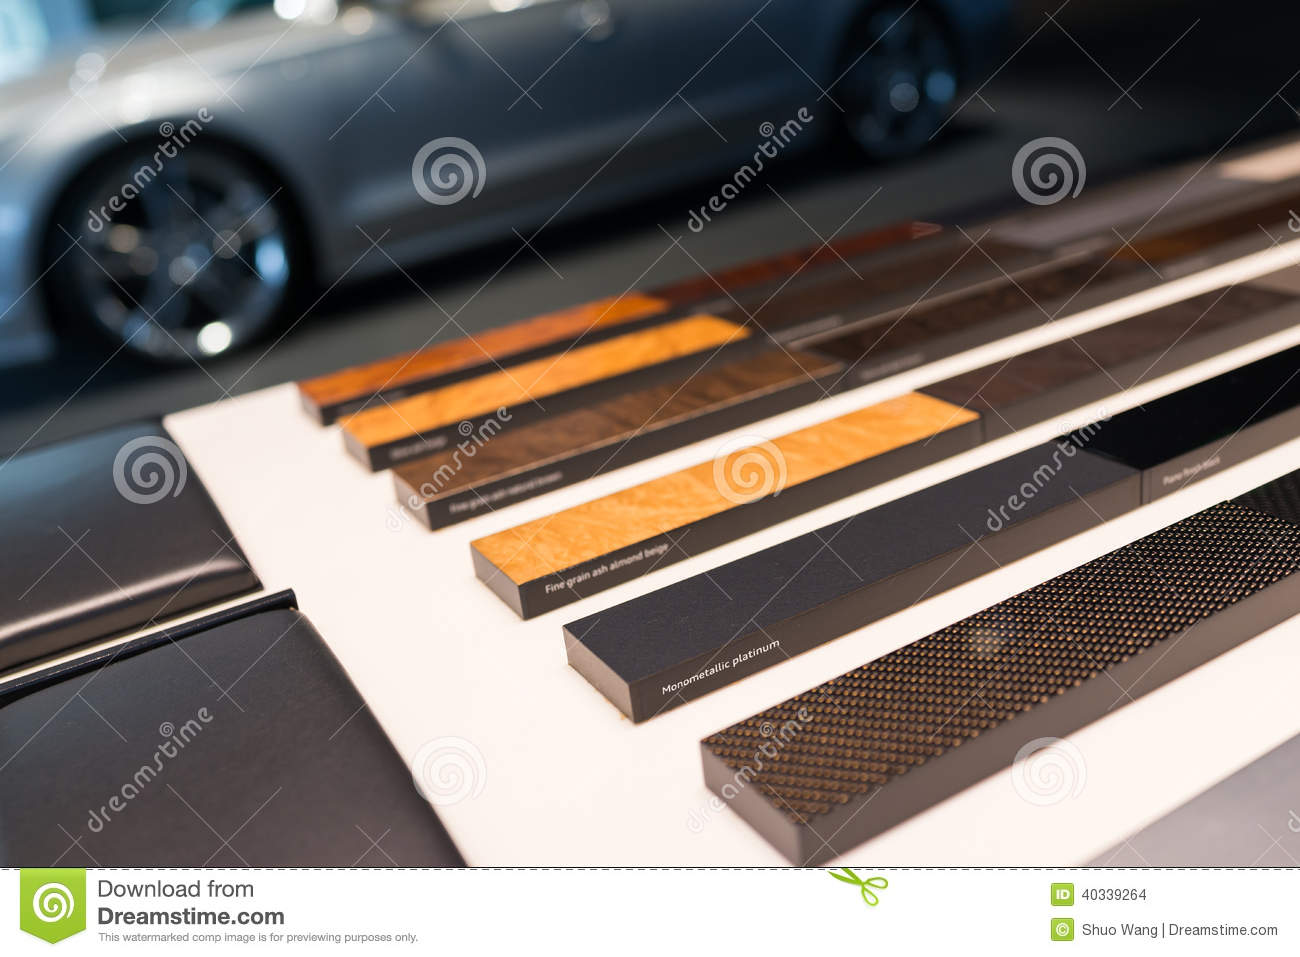 automotive interior materials samples stock photo image 40339264. Black Bedroom Furniture Sets. Home Design Ideas